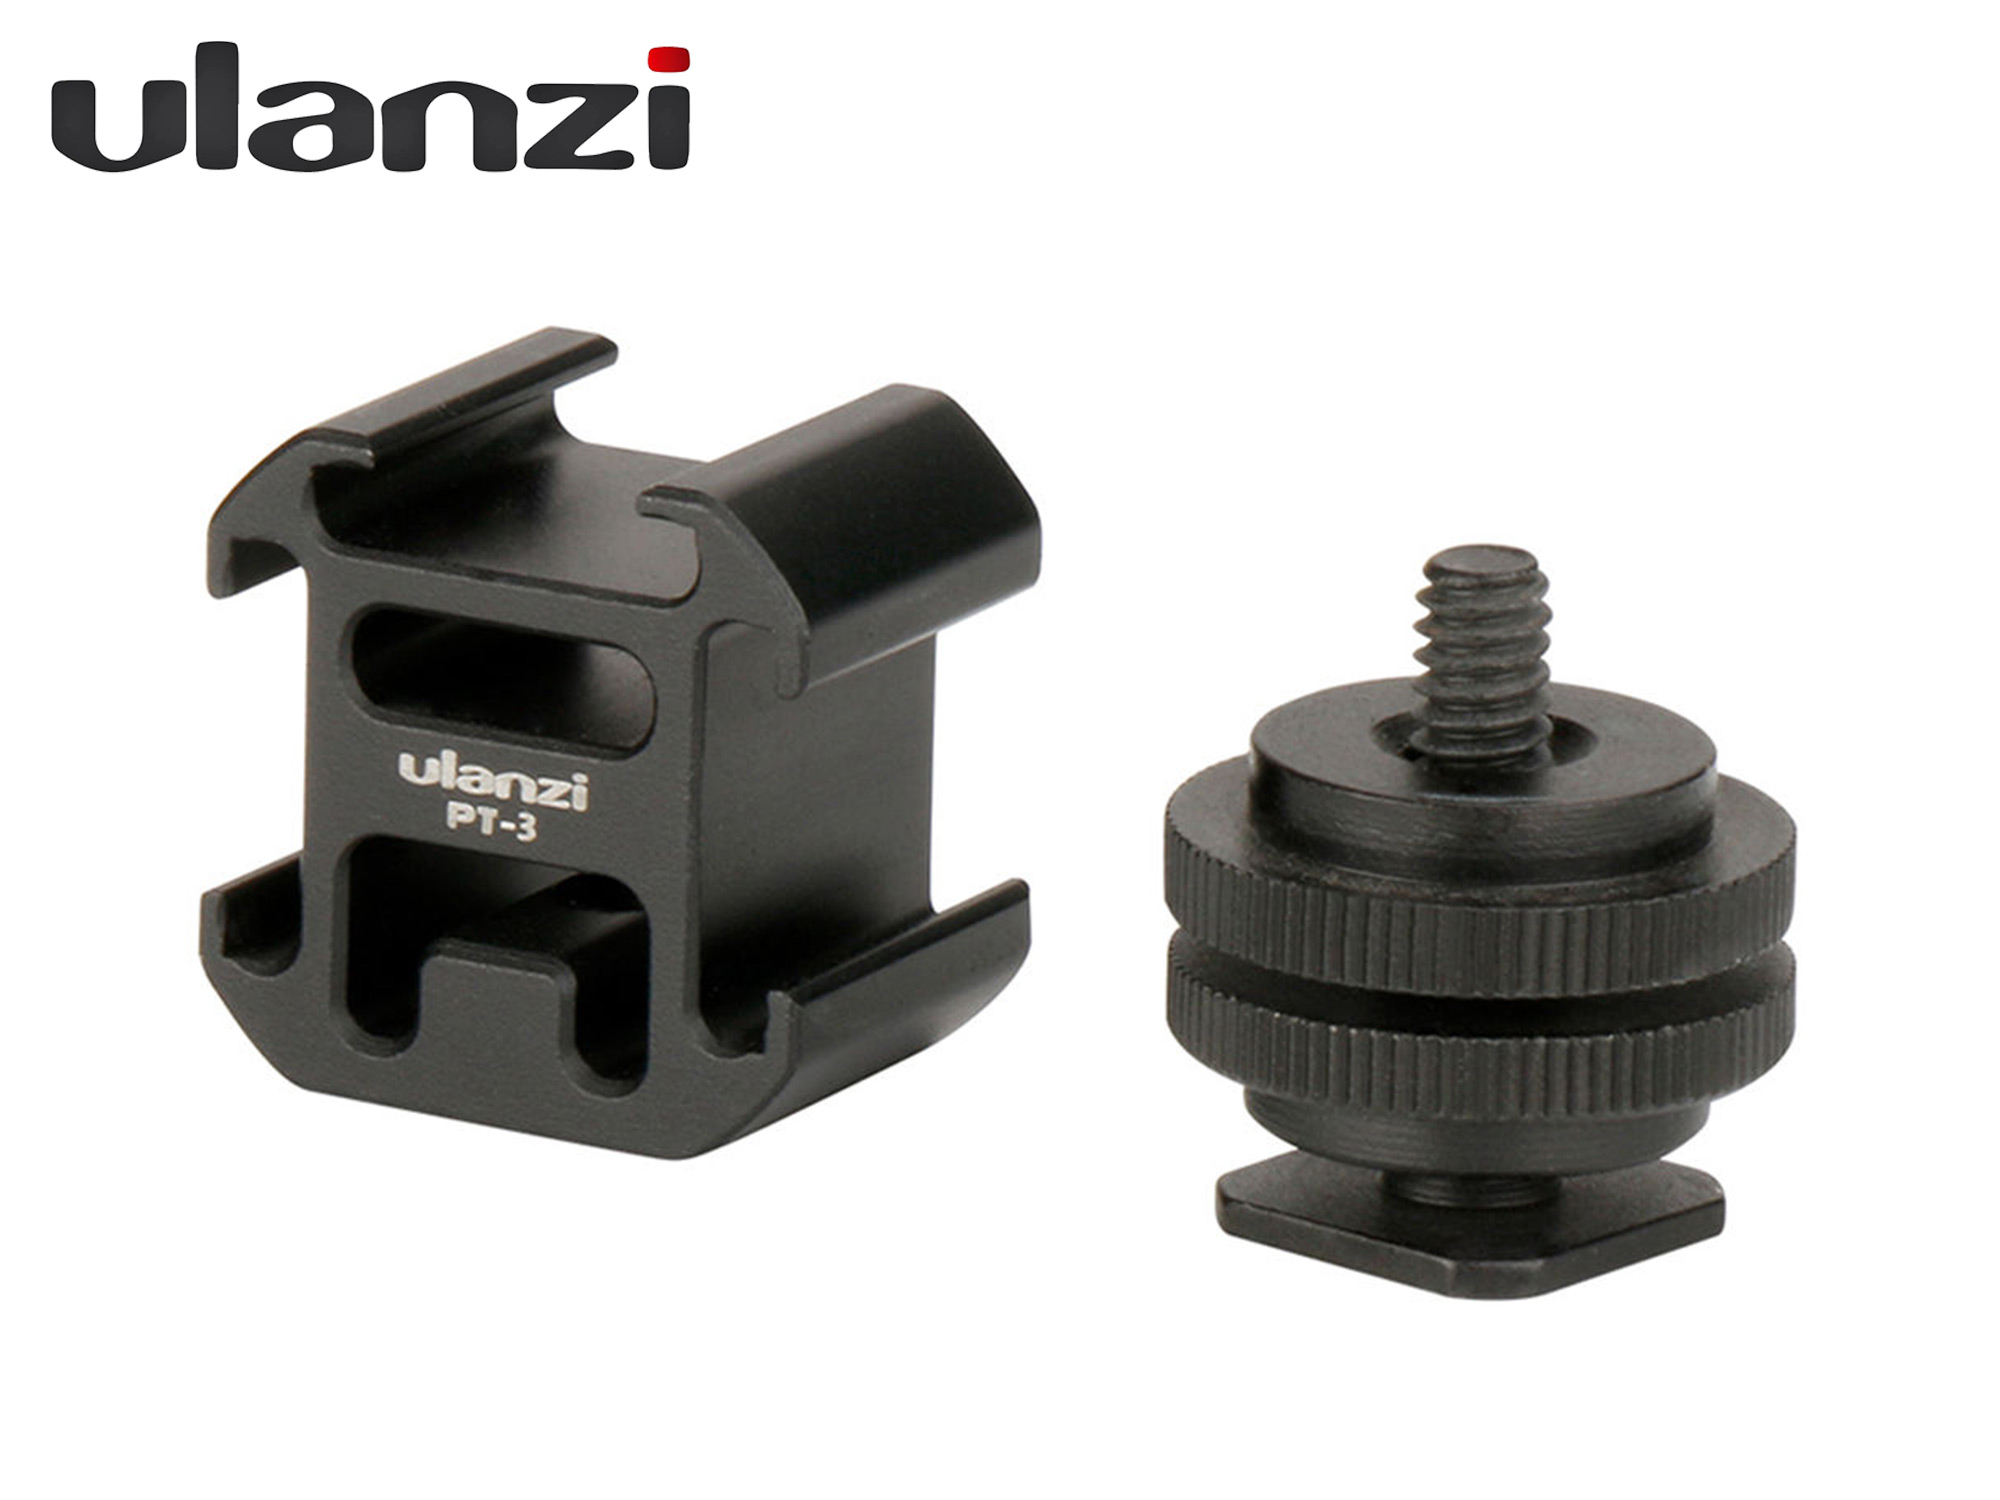 Ulanzi Triple Cold Shoe Camera Mount